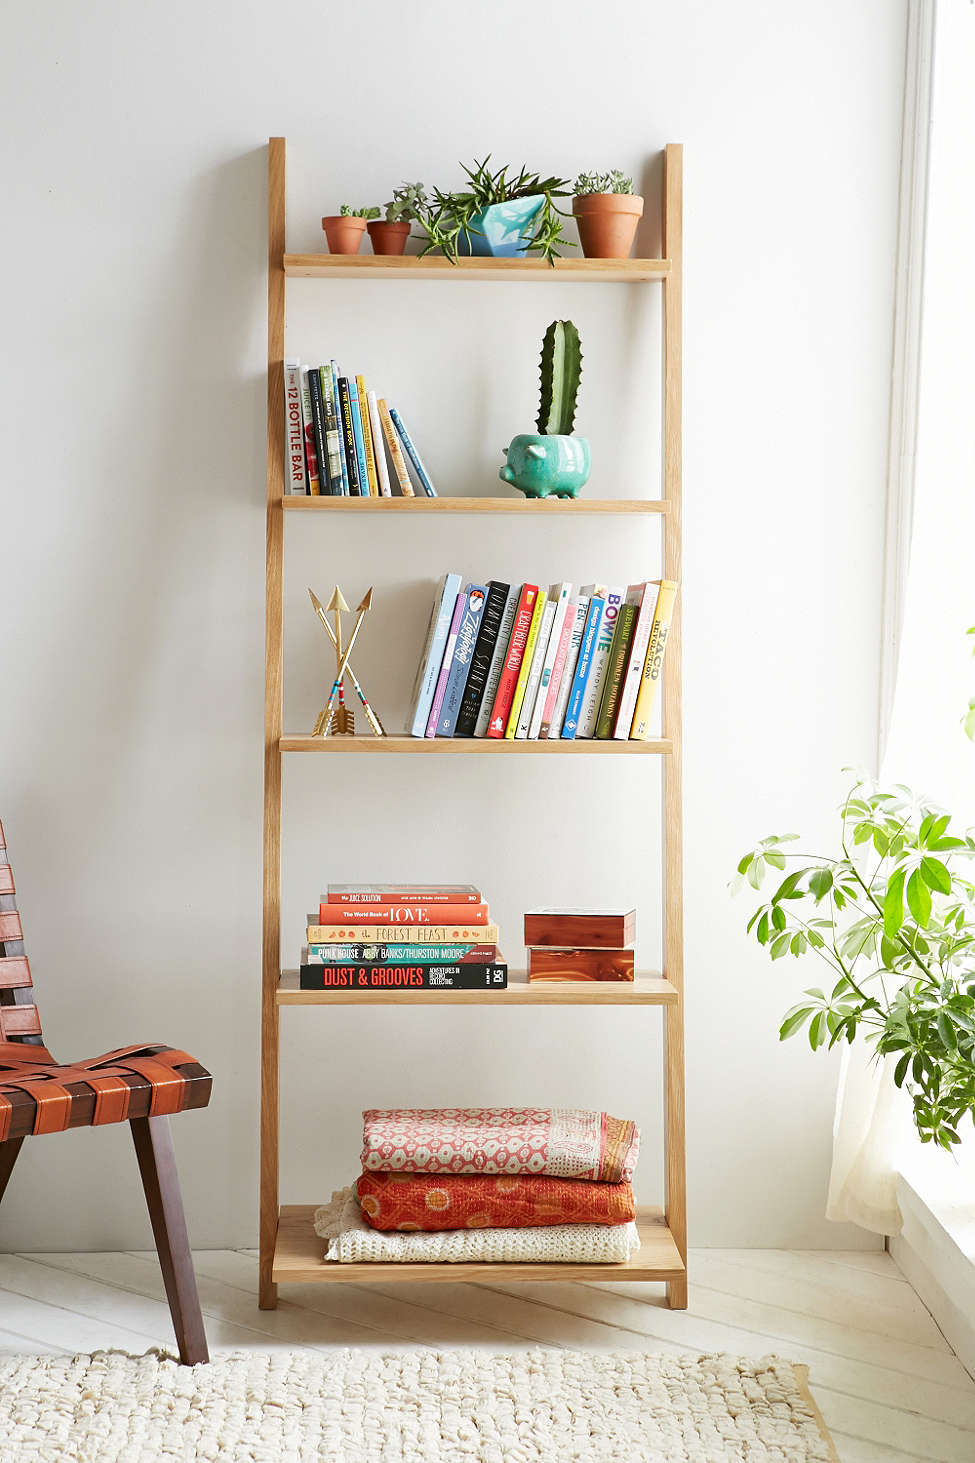 Leaning Bookshelf Design Possibilities – Casual With A Hint Of ...